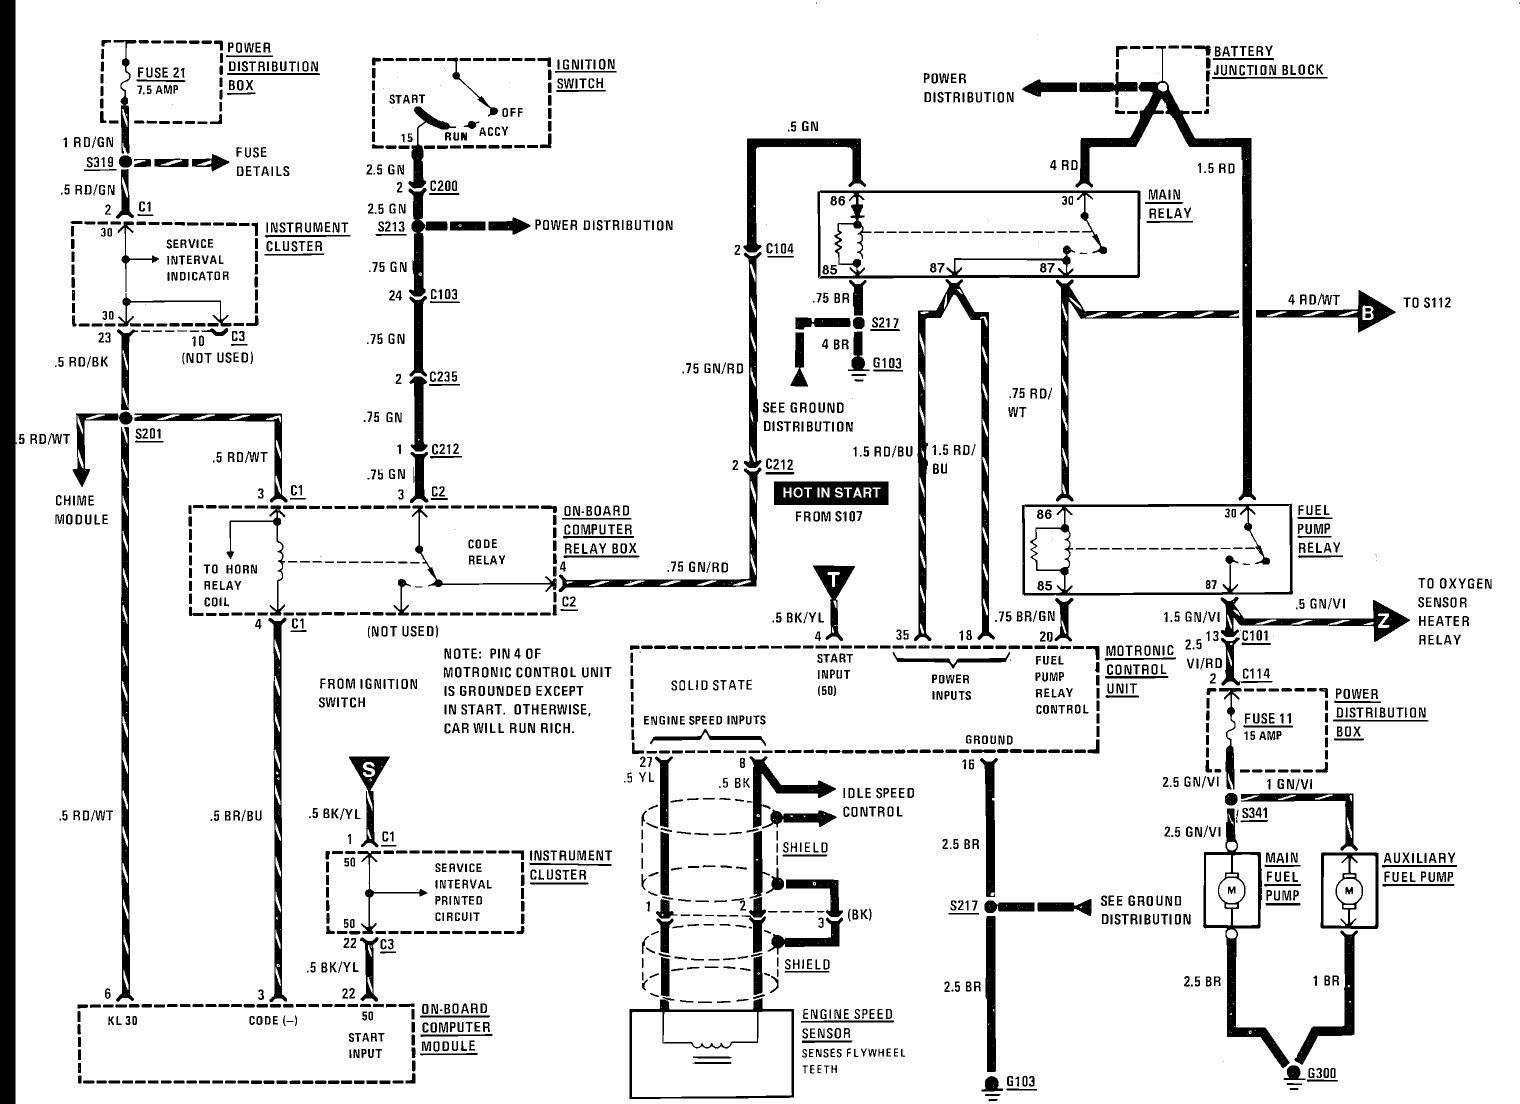 E36 Wiring Harness Image | Wiring Diagrams with E36 Wiring